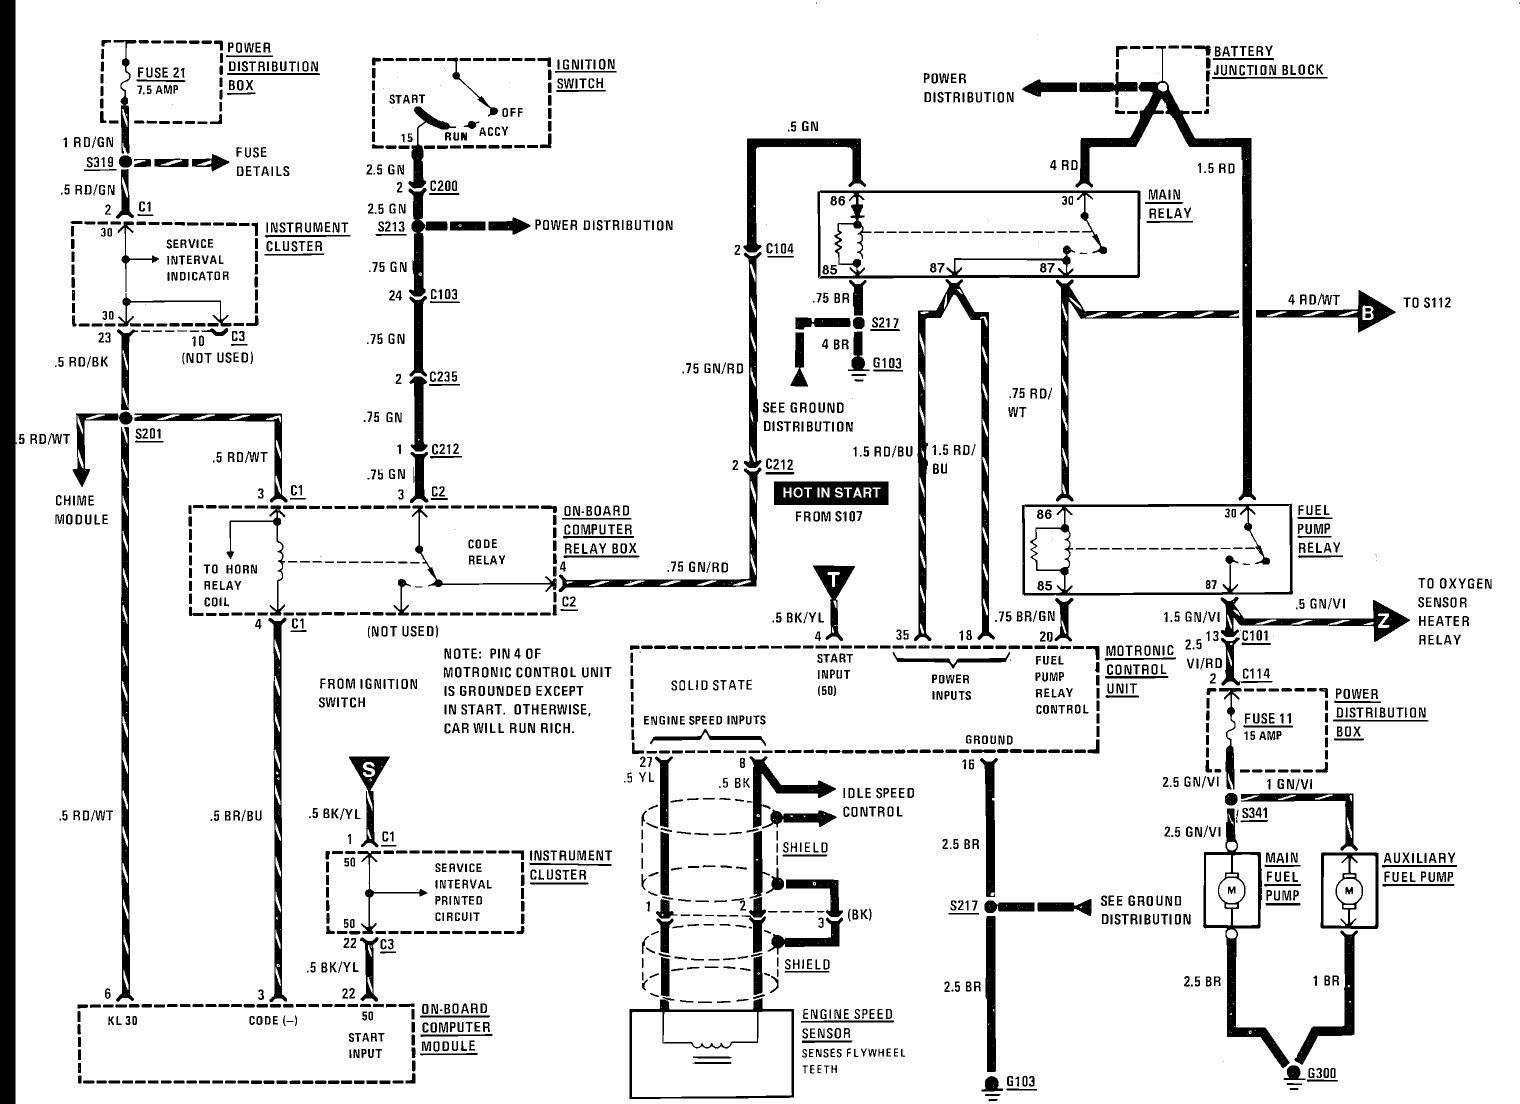 E36 Wiring Harness Image | Wiring Diagrams with E36 Wiring